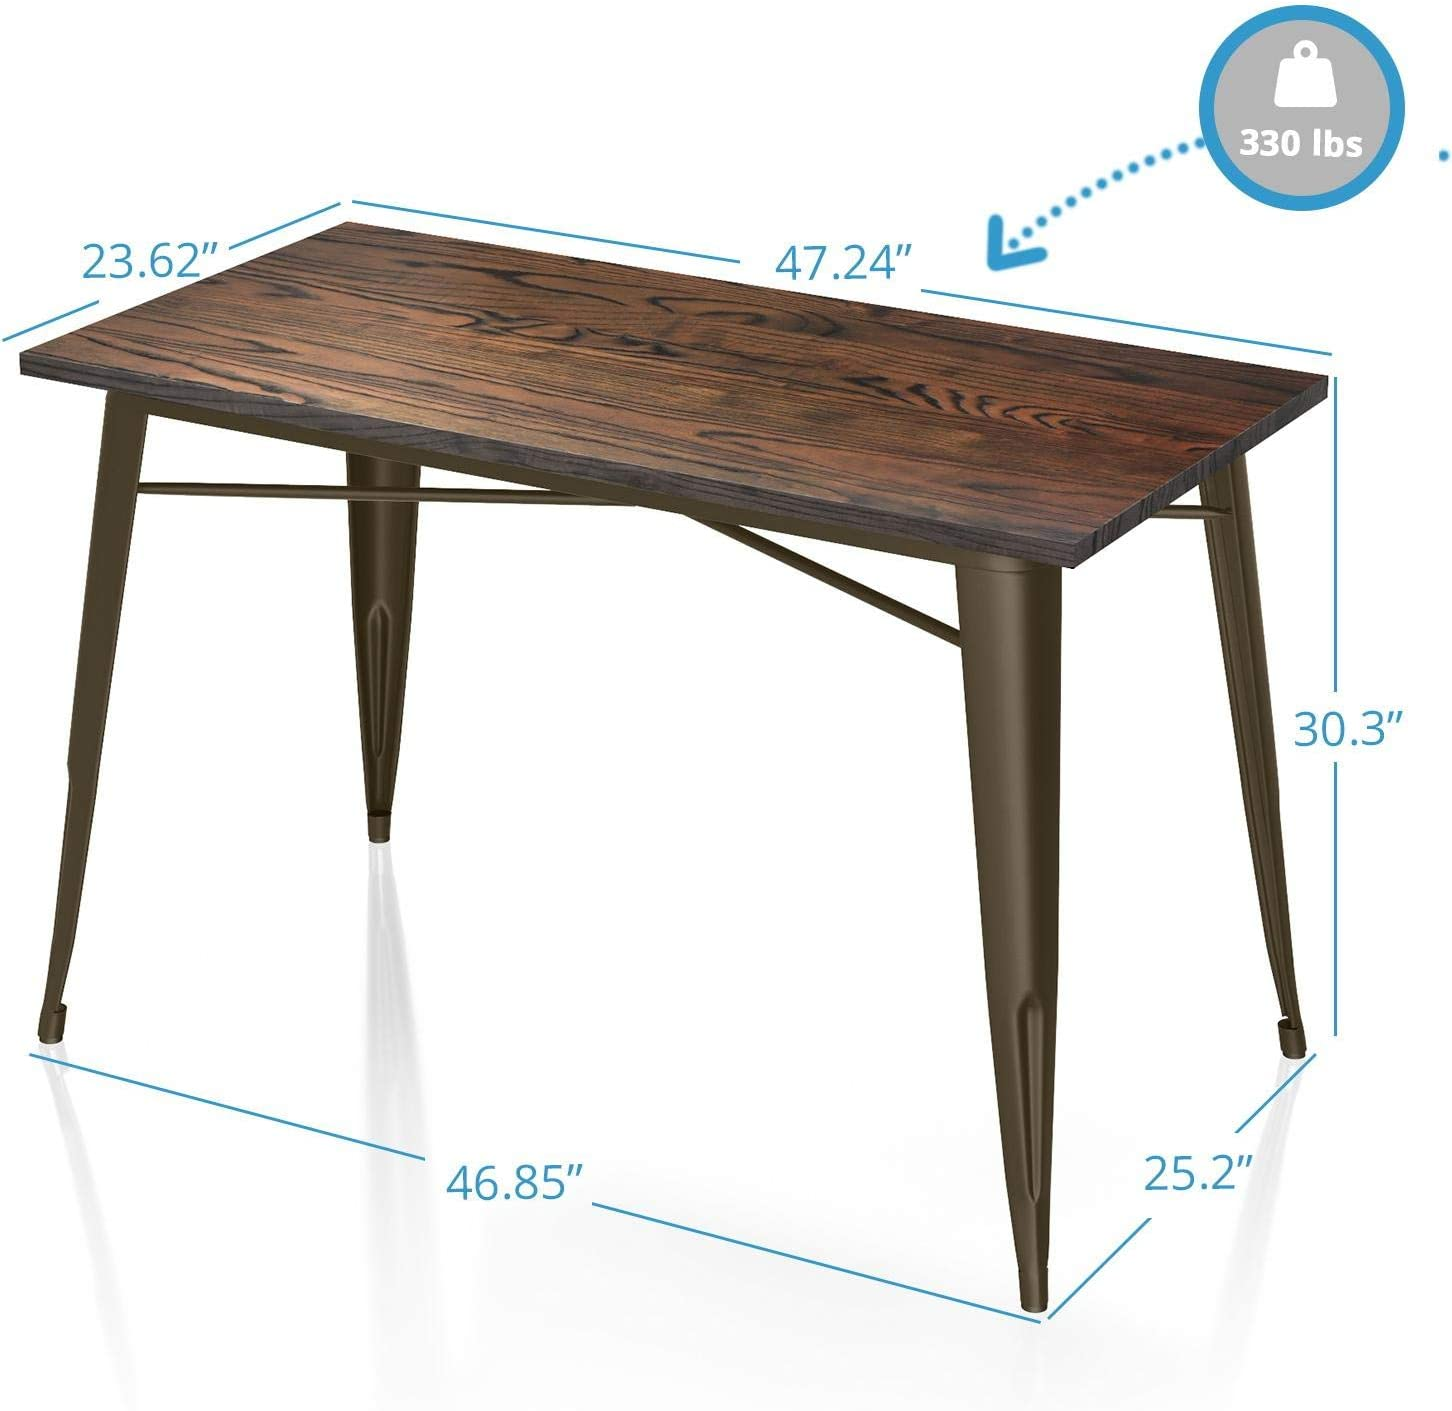 VIPEK 30 Inches Height Metal Dining Table Heavy-Duty Rectangle with Solid Elm Wooden Table Top for Bistro Pub Table Farmhouse Home Kitchen Dining Table Rustic Industrial Style Gloss Black